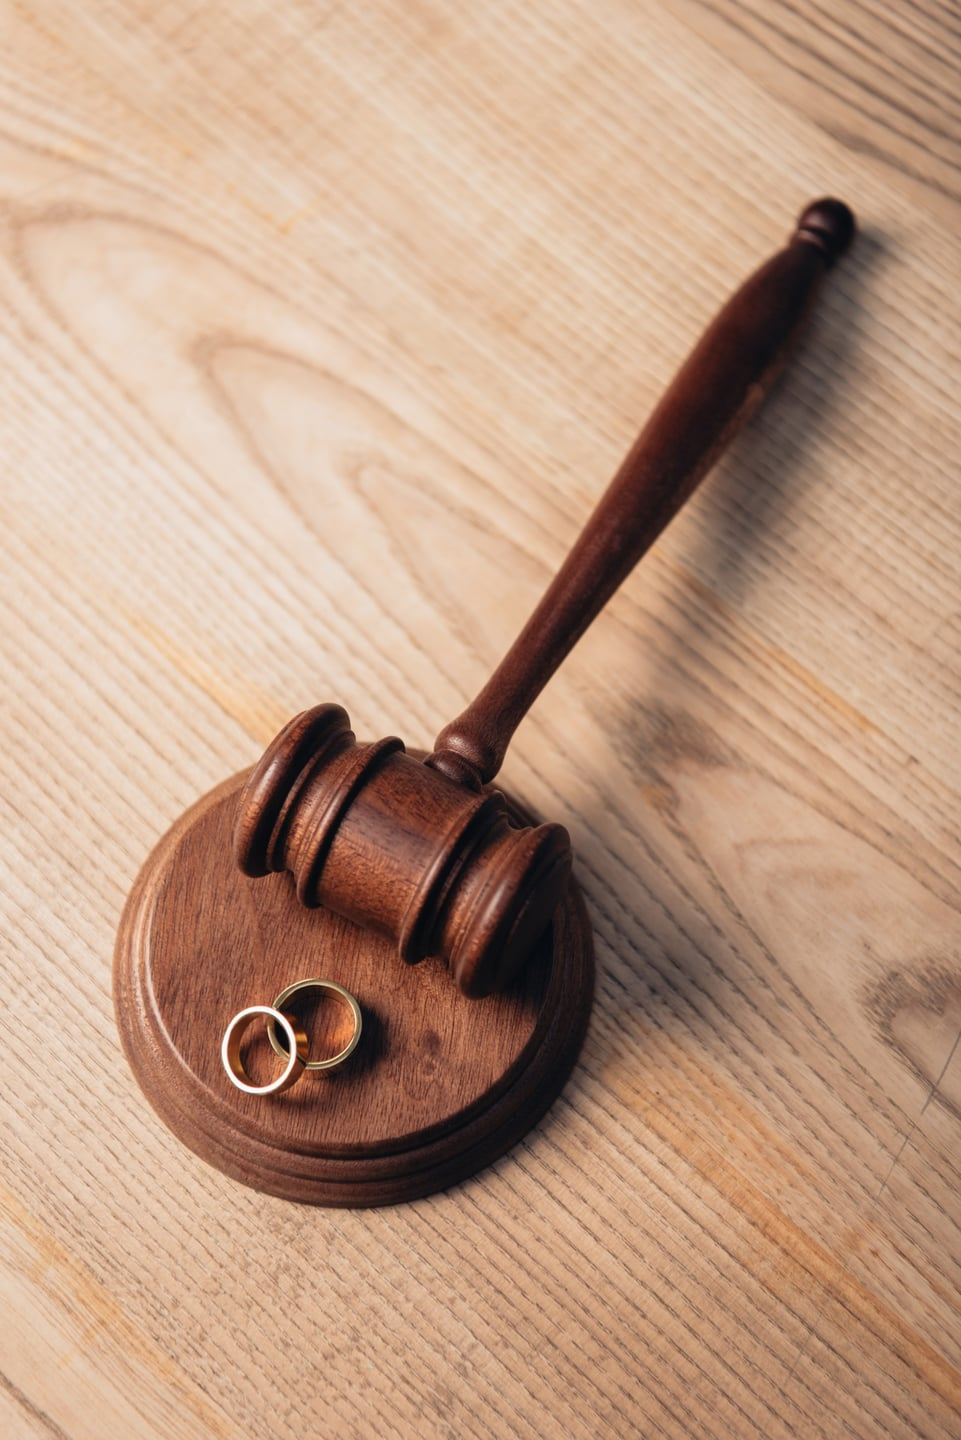 Family Lawyers Gavel and wedding bands